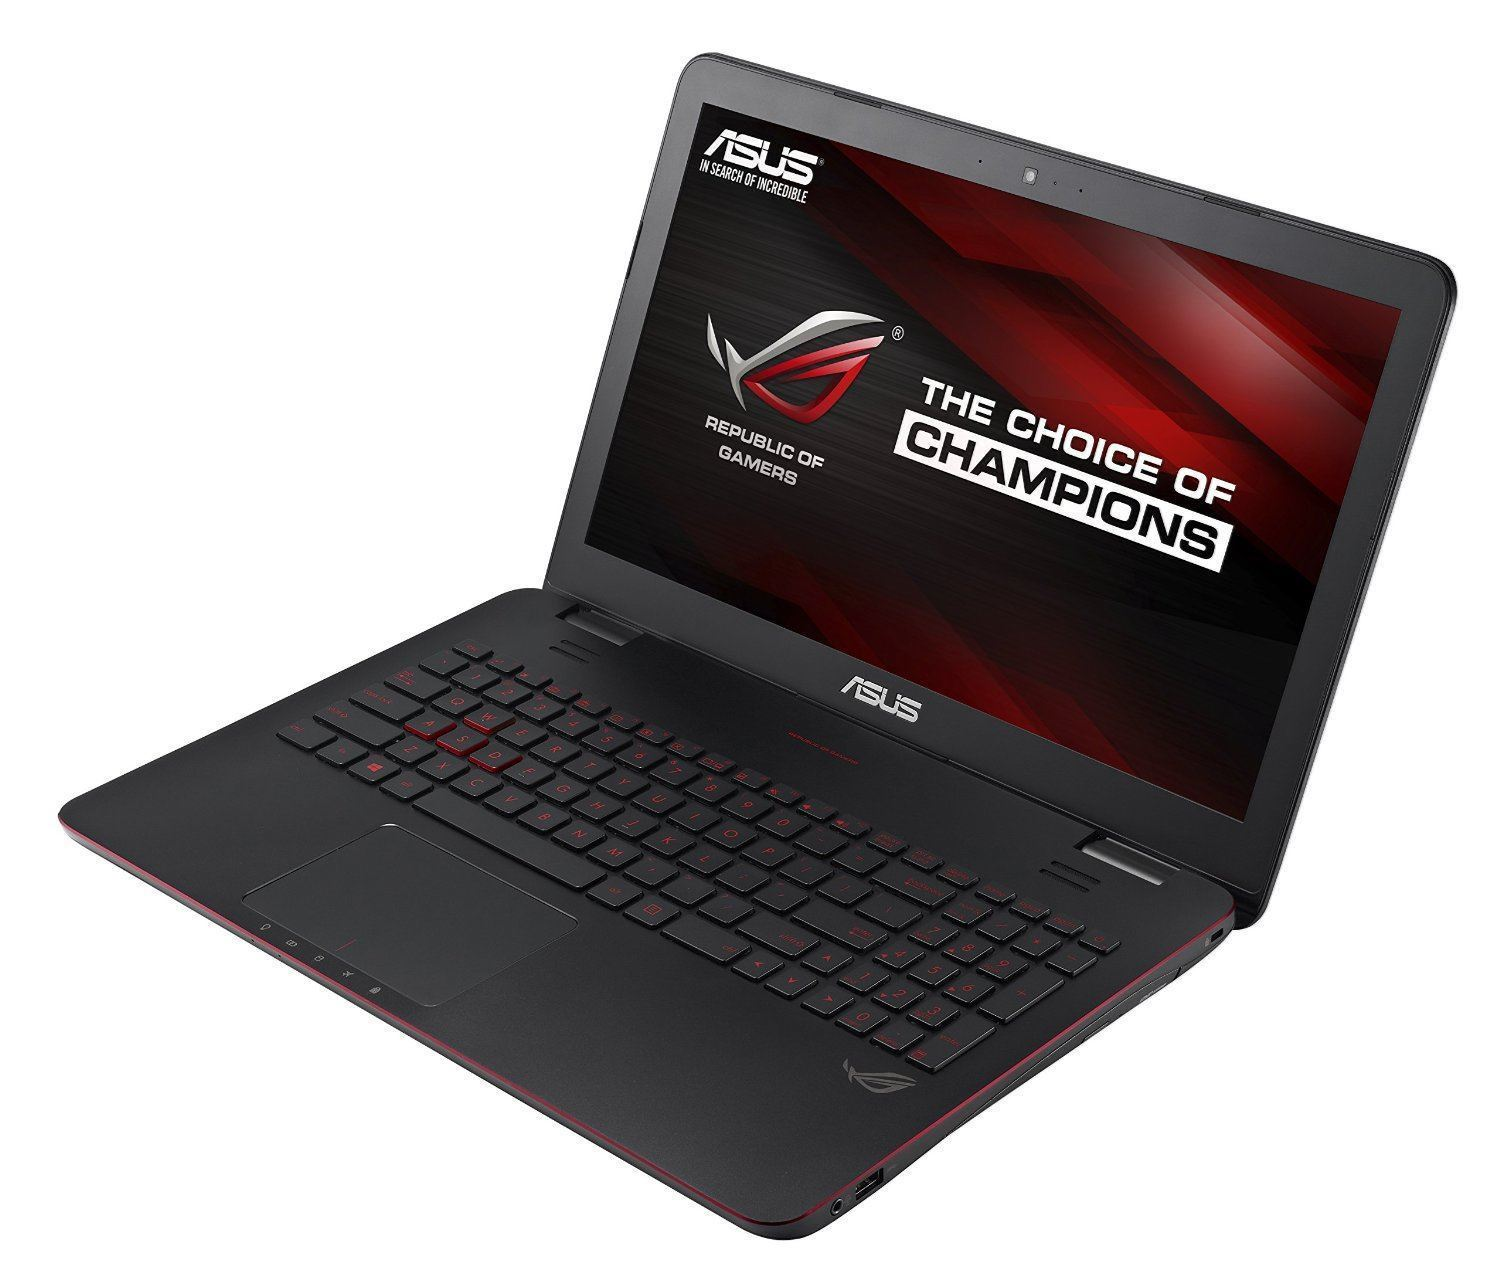 Nvidia Geforce Gtx 960m 950m And 940m In Asus Acer And